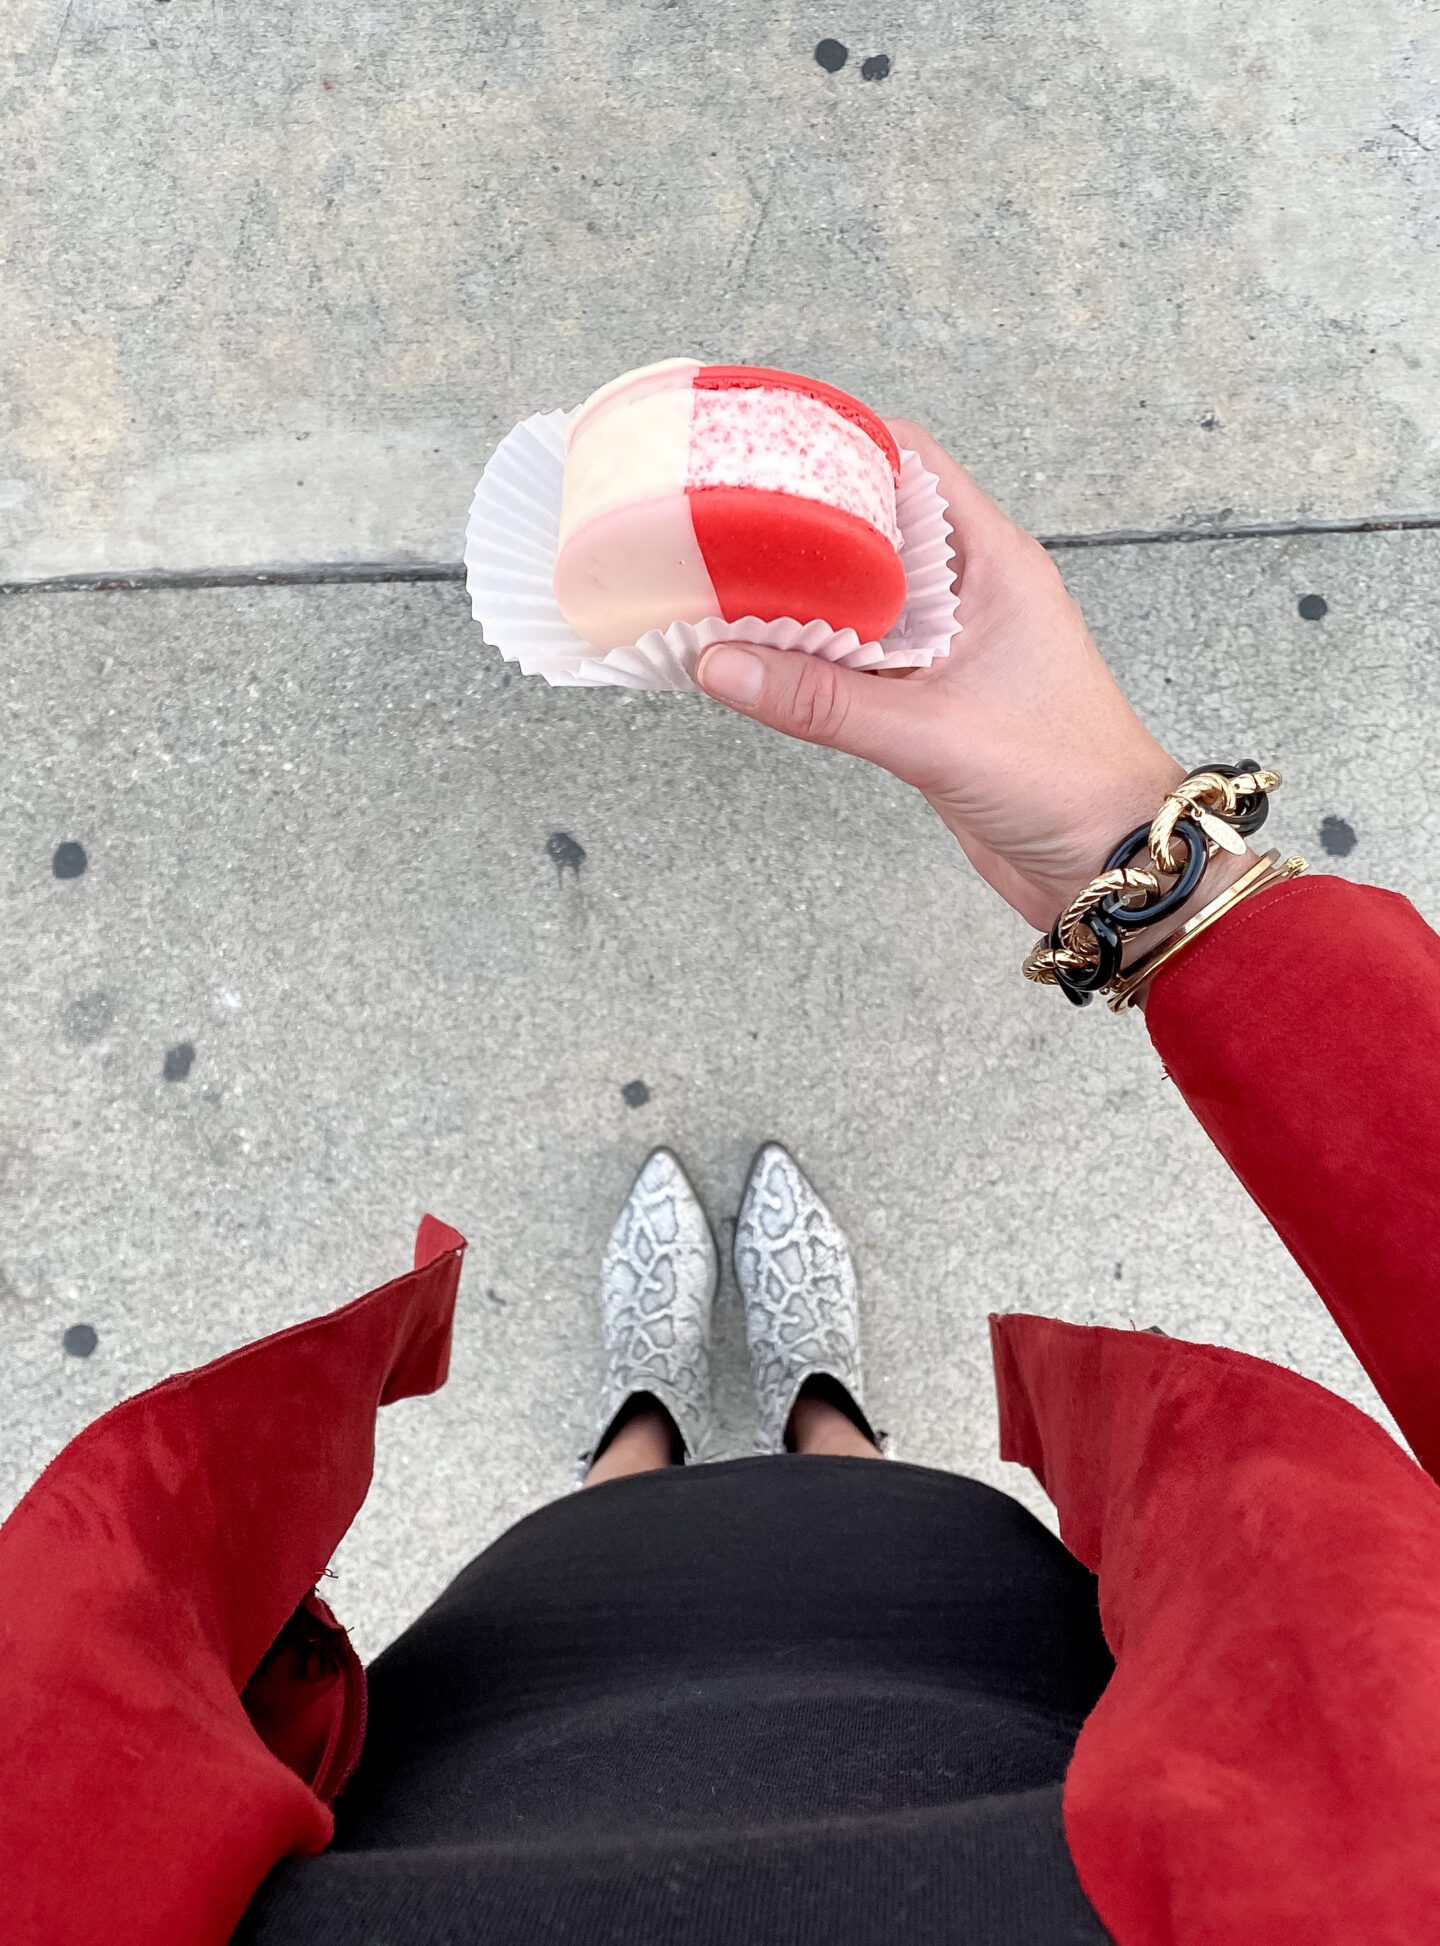 Popular US Style Blogger, Style & Wanderlust, shares the 5 best treats in LA you need to try.